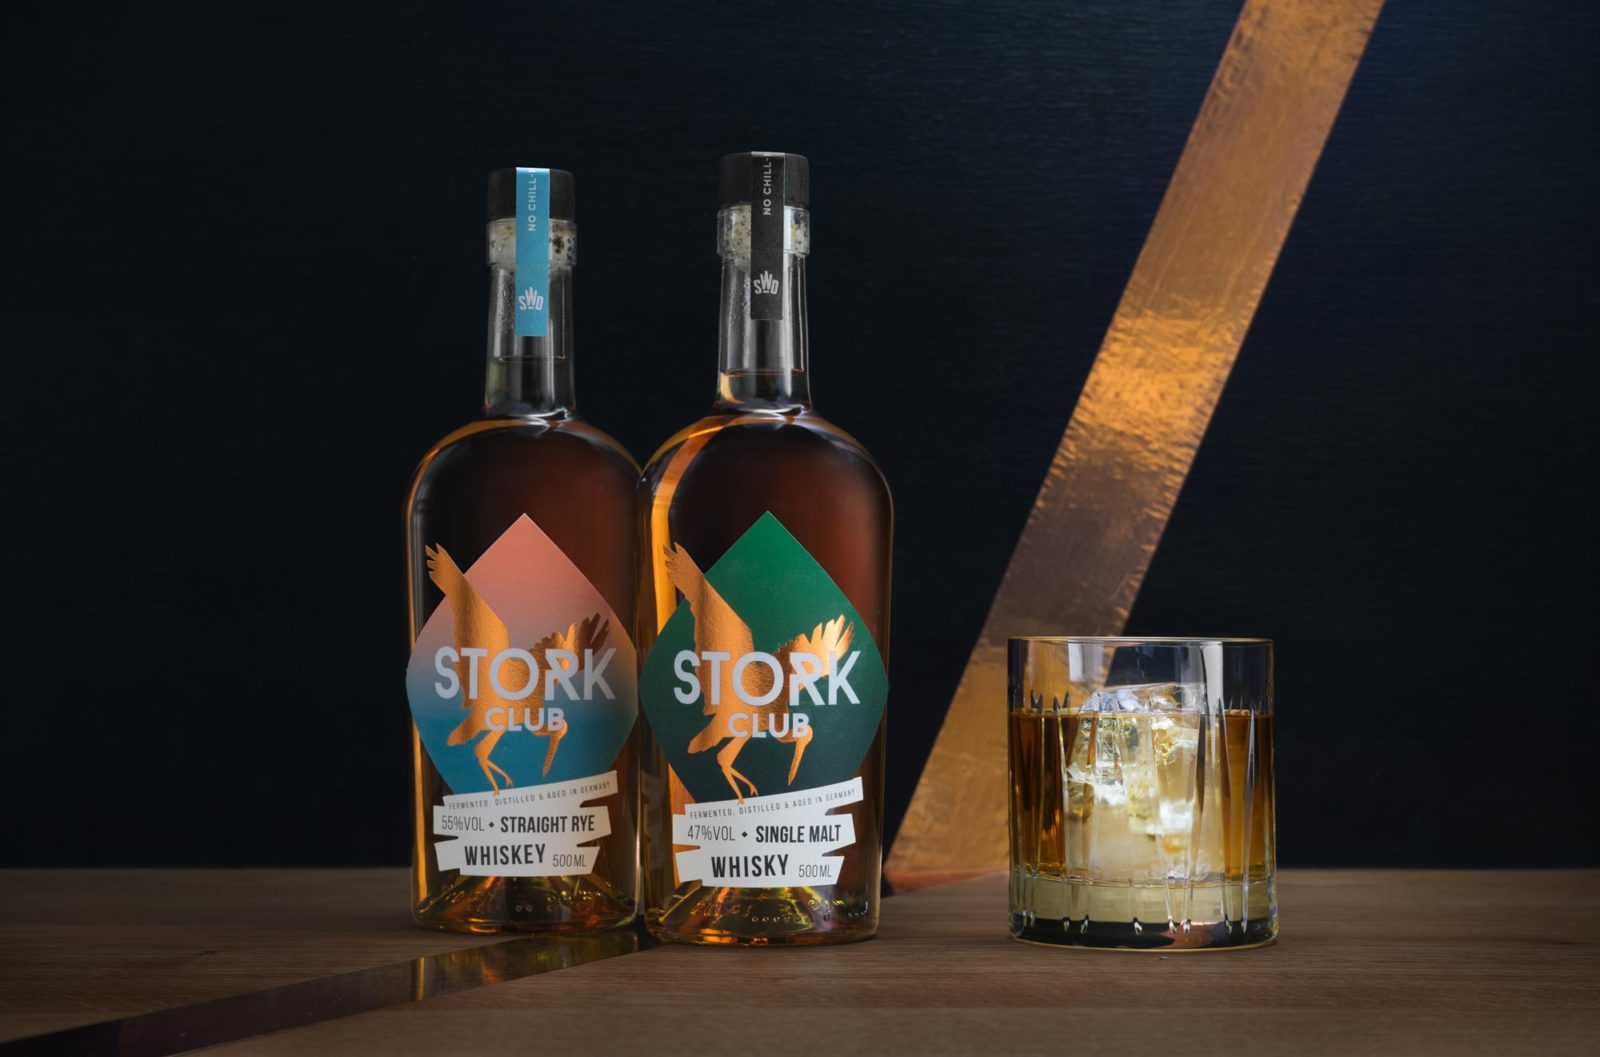 Editienne Grafikdesign - Kommunikationsdesign Berlin- Packaging Design- Spreewood Distillers- Stork Club Whisky 18